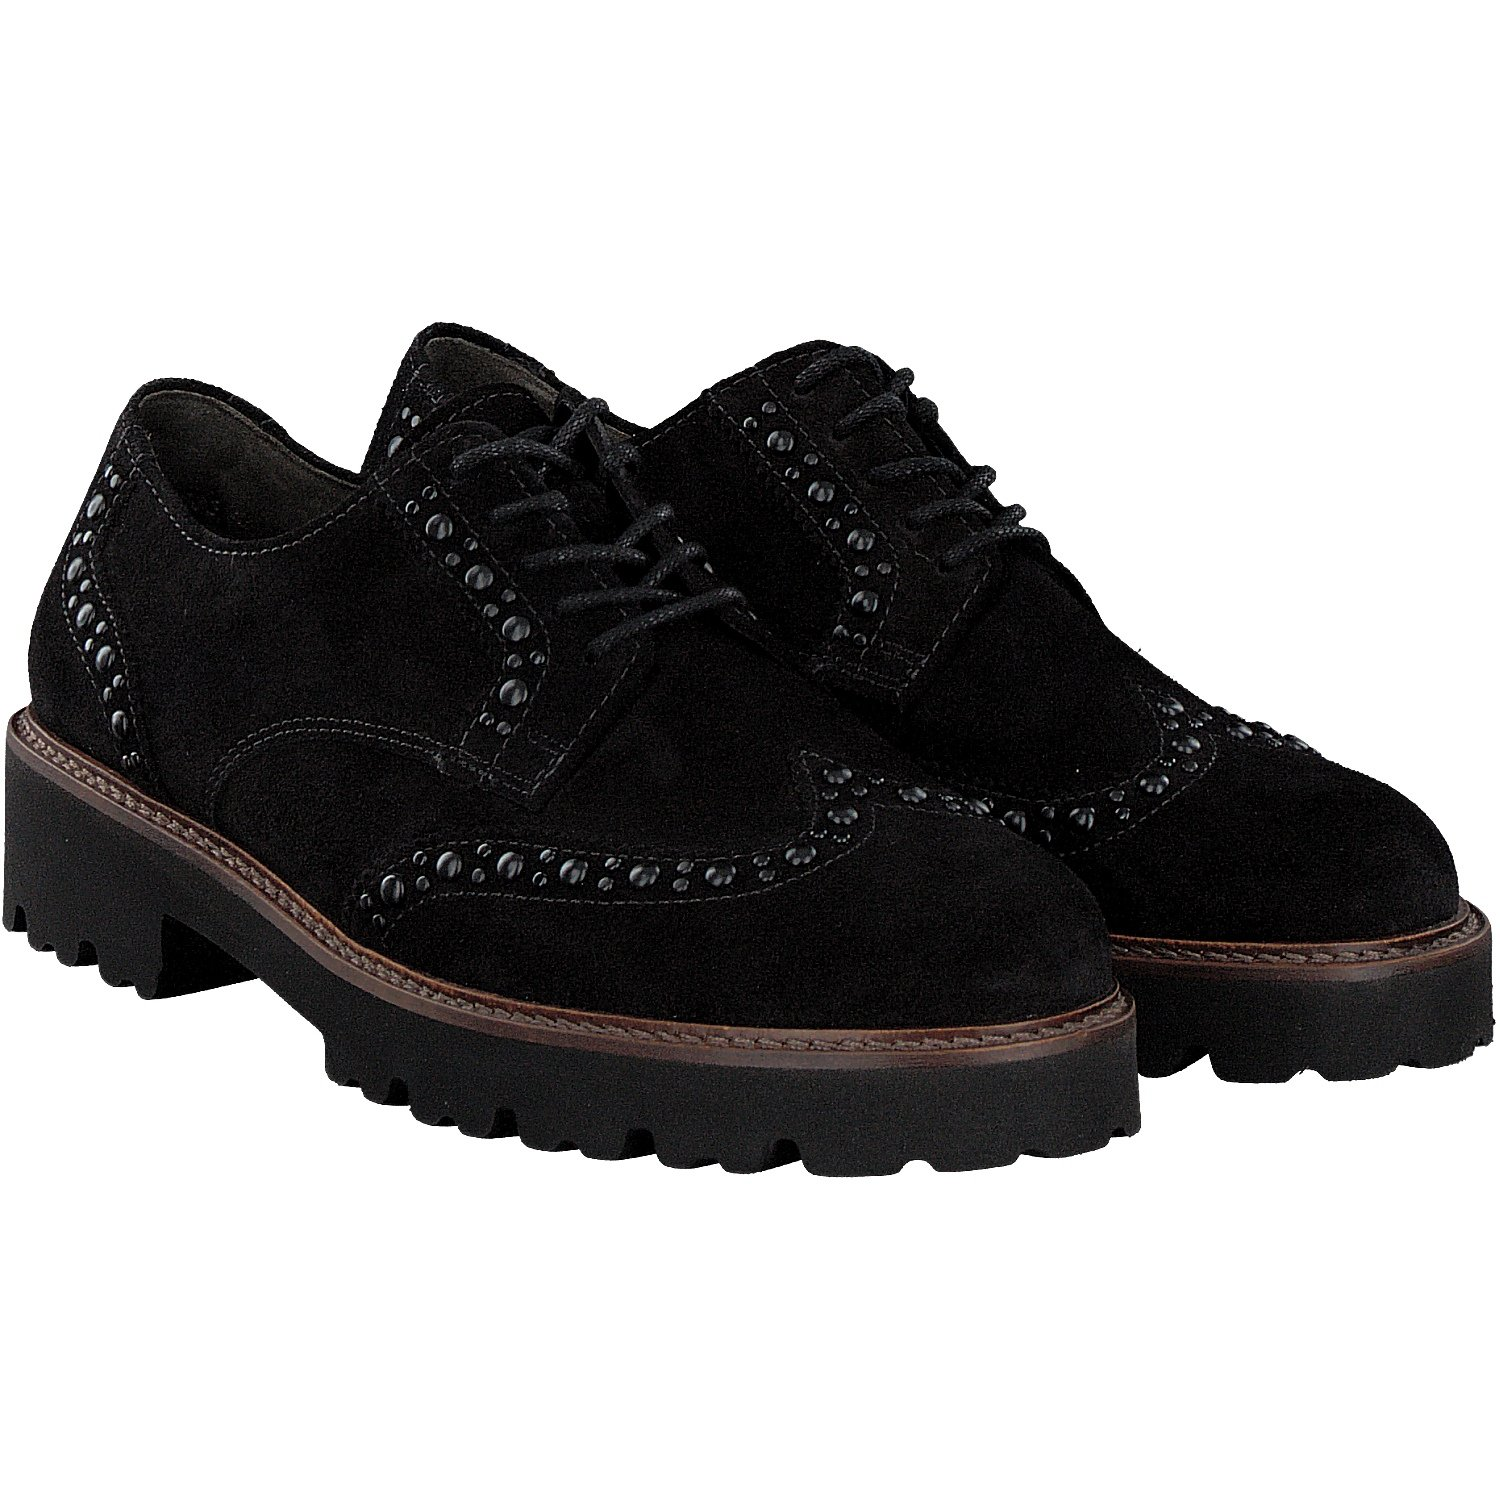 GOODWOOD 5993 GABOR CHUNKY UP LACE GABOR UP SHOE Black ae52bfb - conorscully.space